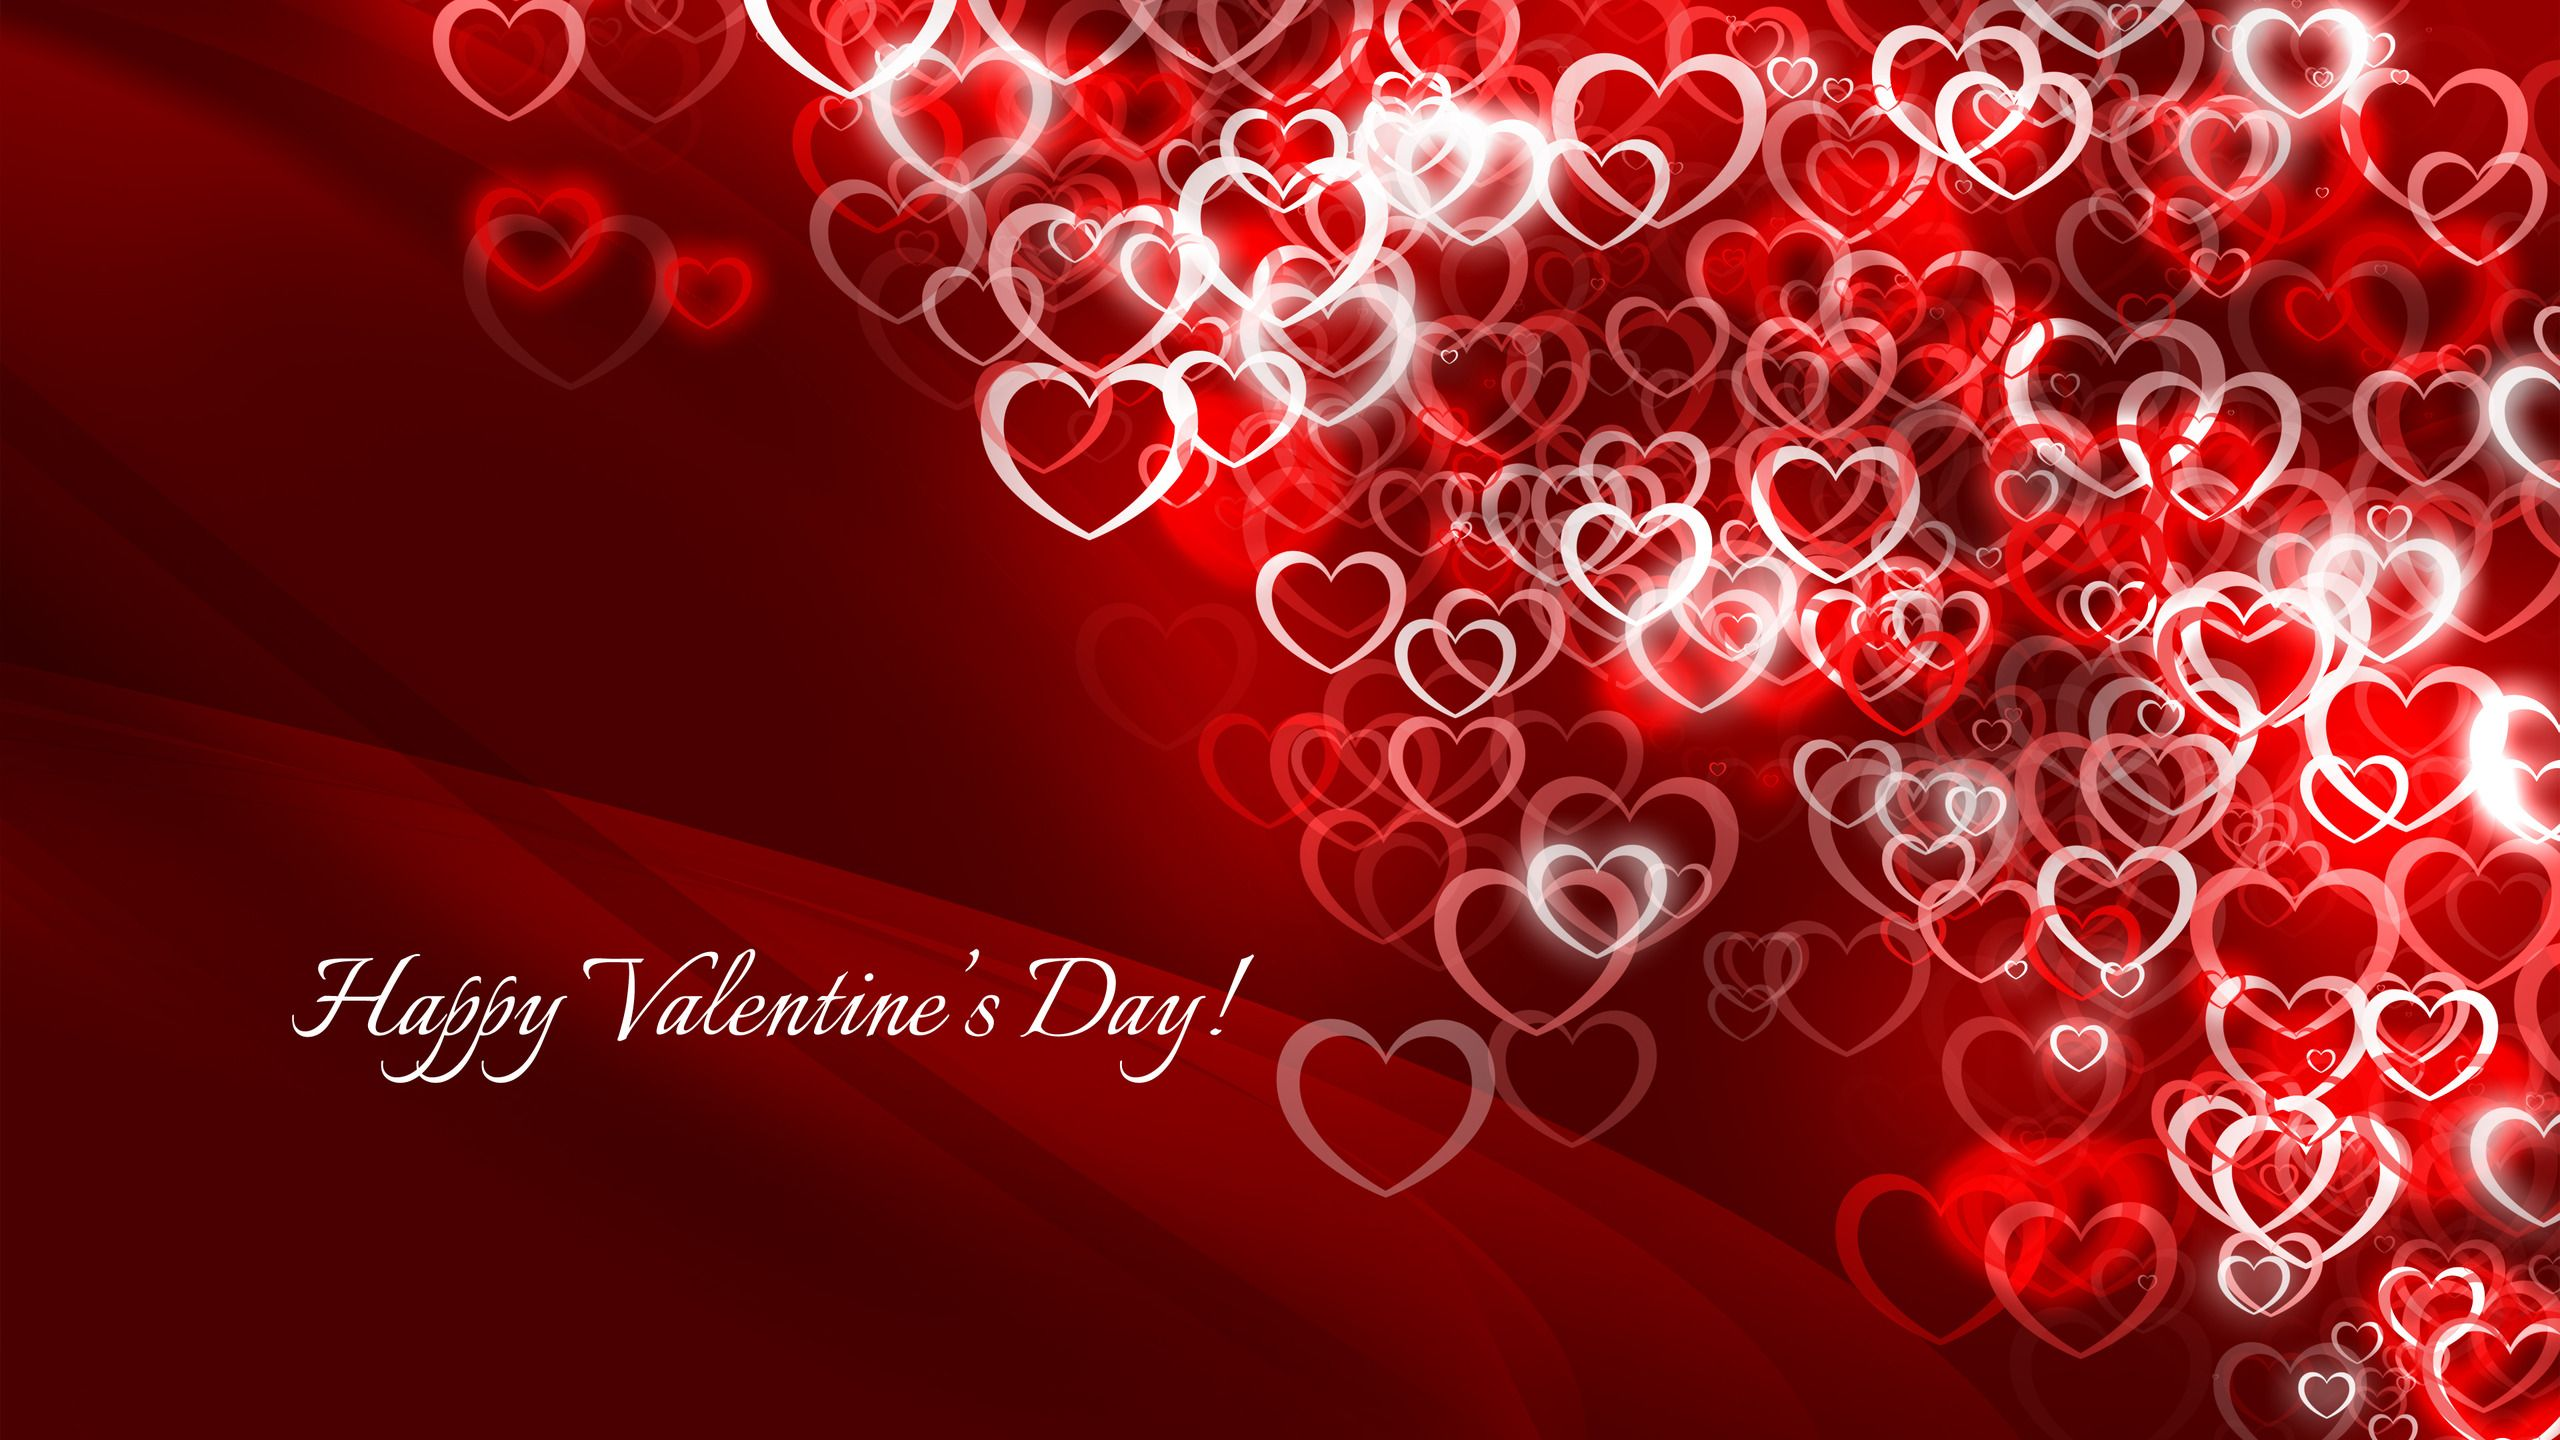 Valentines day Wallpaper Valentines Day Pinterest – Happy Valentines Day 2015 Cards